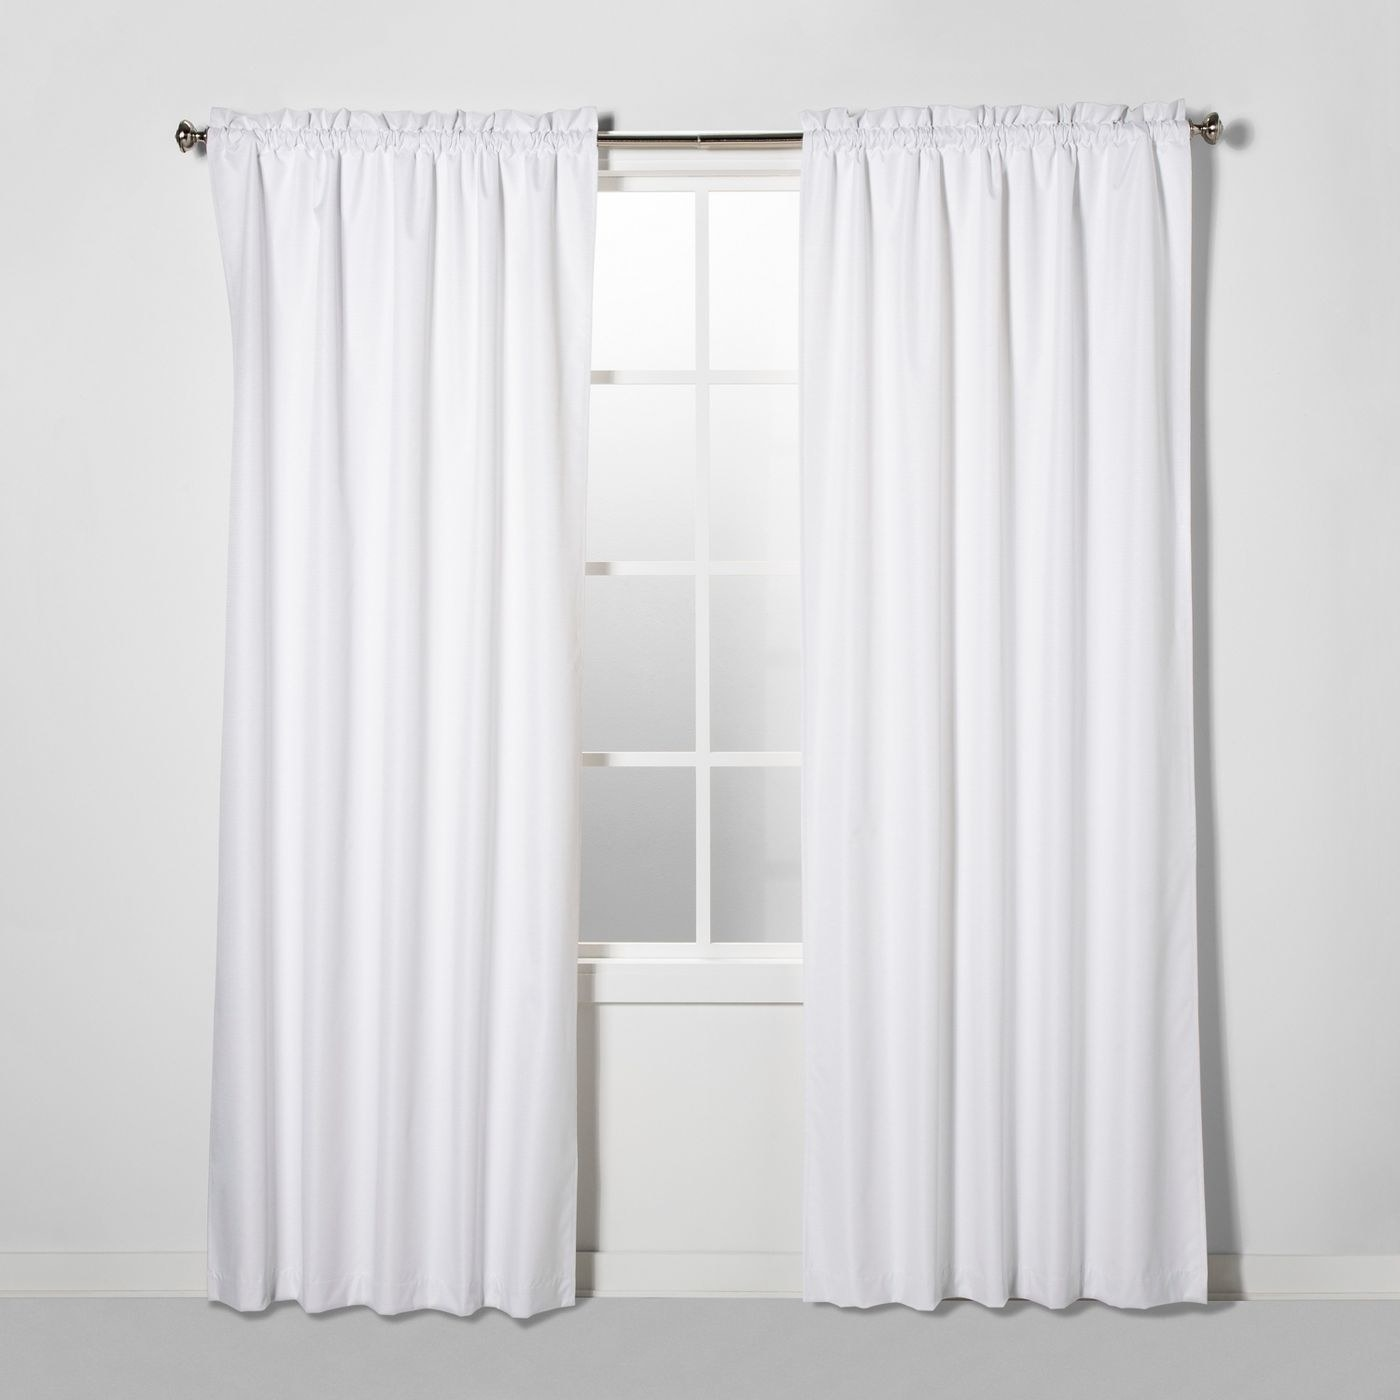 The white curtains